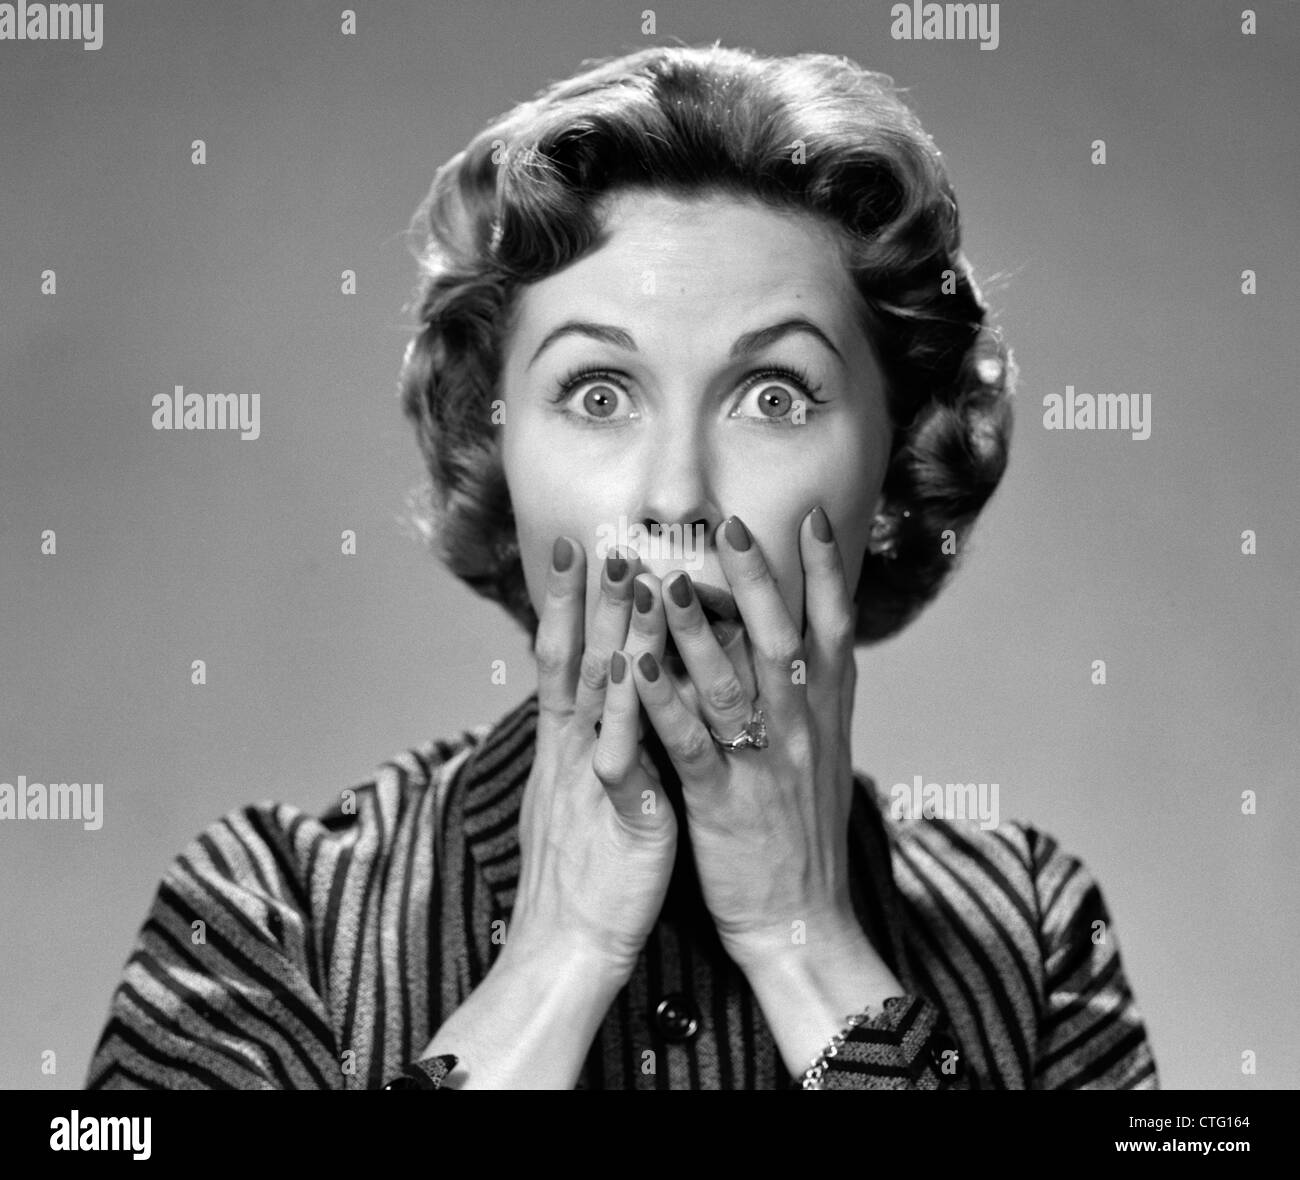 1950s PORTRAIT OF WOMAN IN STRIPED DRESS HANDS TO MOUTH WITH SHOCKED EXPRESSION LOOKING AT CAMERA - Stock Image